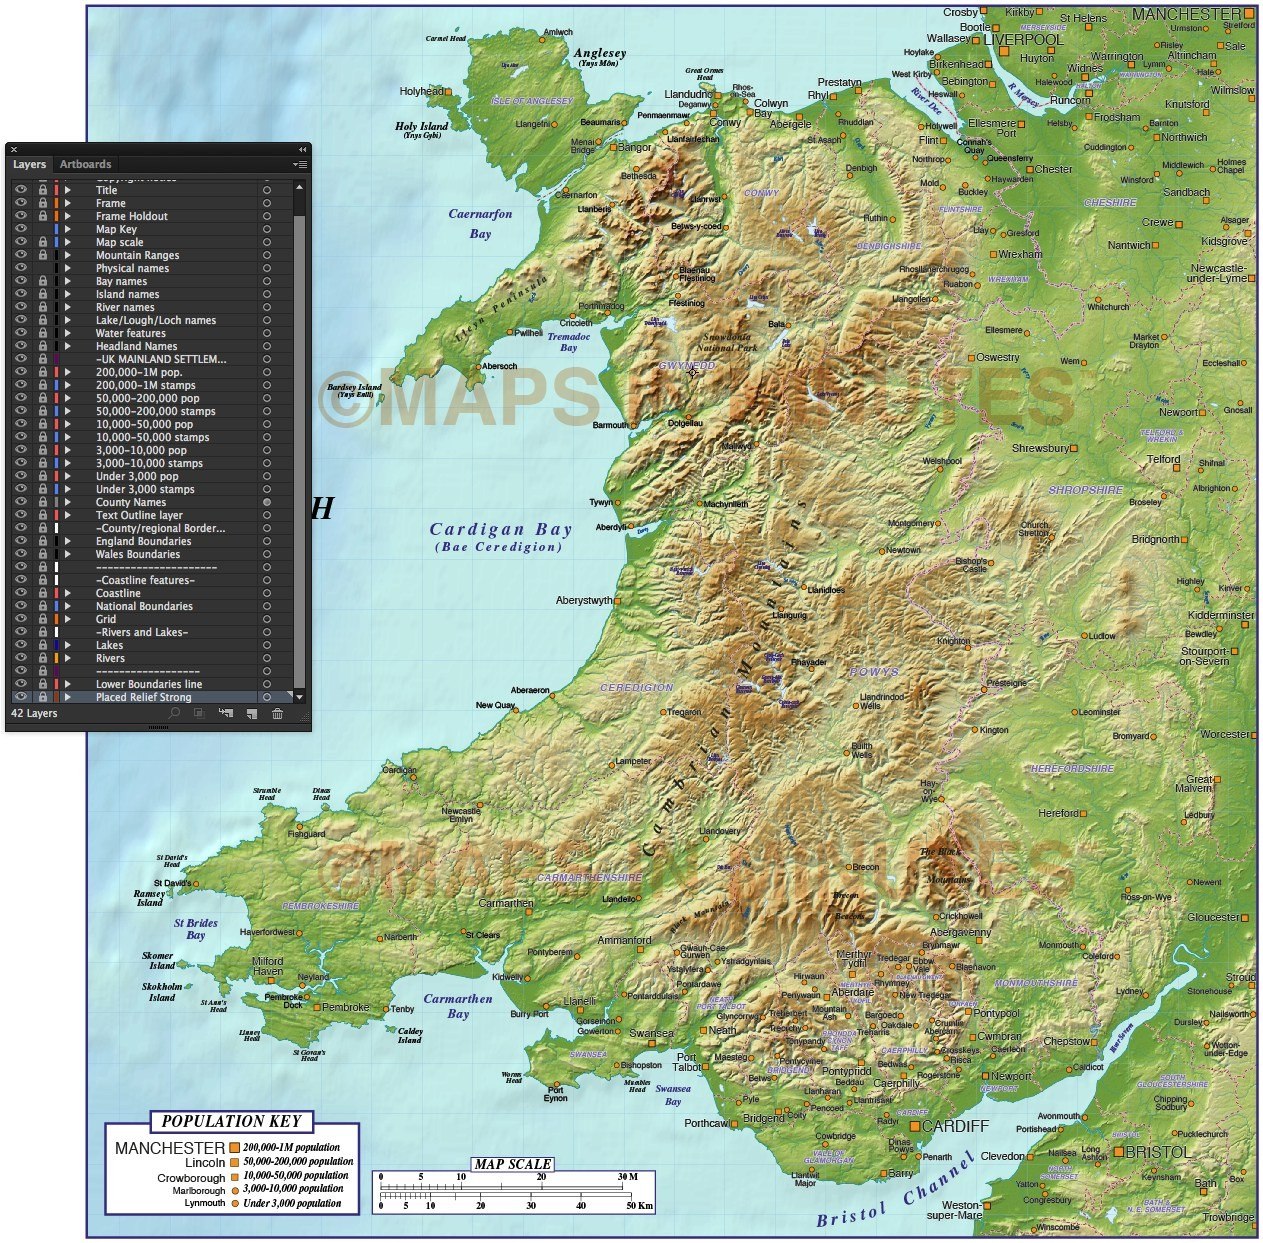 Wales 1st level Political Map with Strong relief 1m scale in